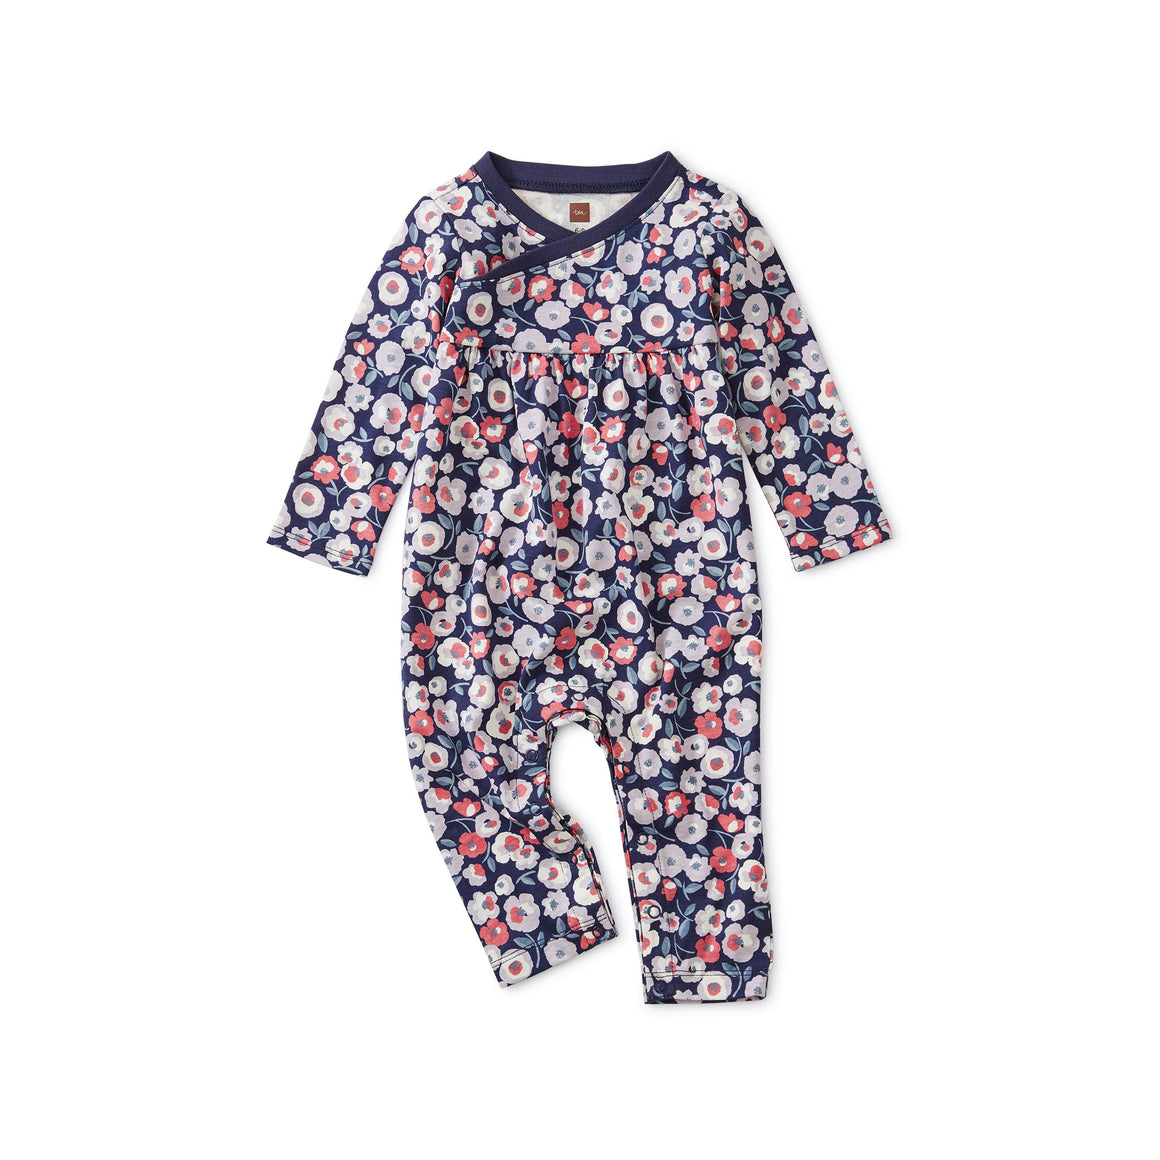 9W32521-Z17 - Tea Collection Marigold Floral Wrap Neck Baby Girl Romper Jumpsuits / Rompers Tea Collection